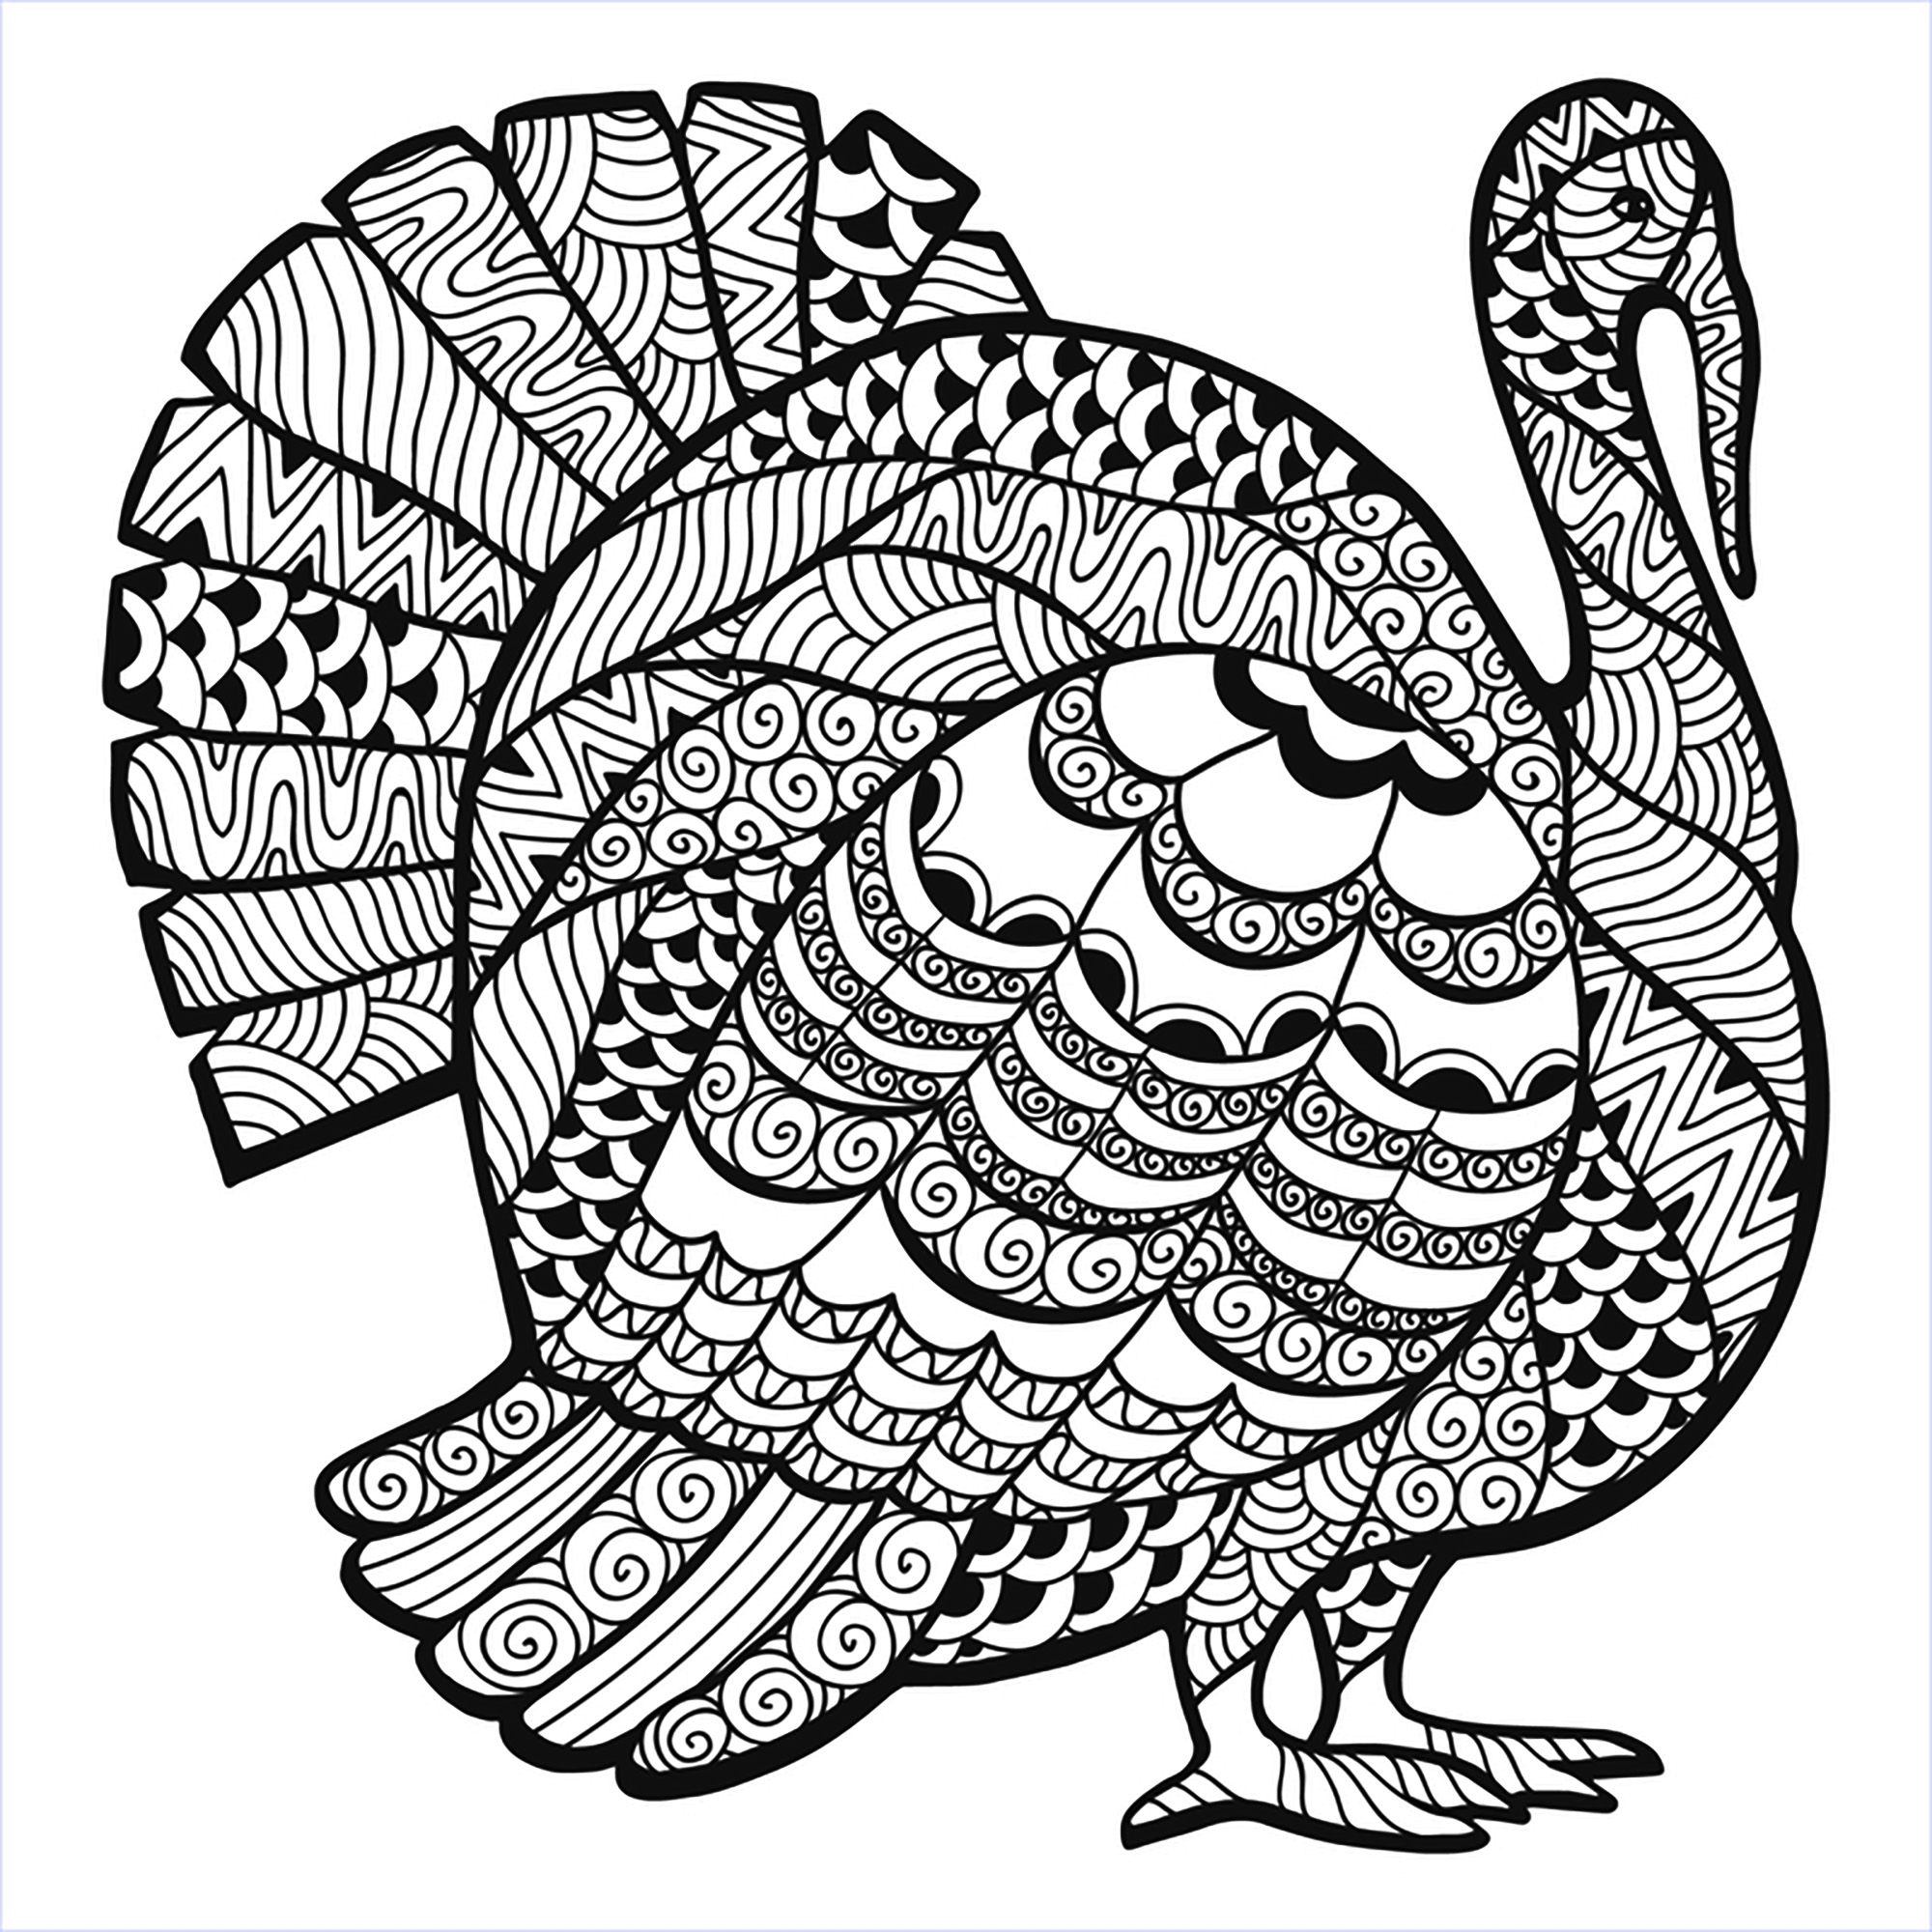 free coloring pages for adults thanksgiving : Free Thanksgiving Coloring Pages For Adults To Print For Kids Download Print And Color